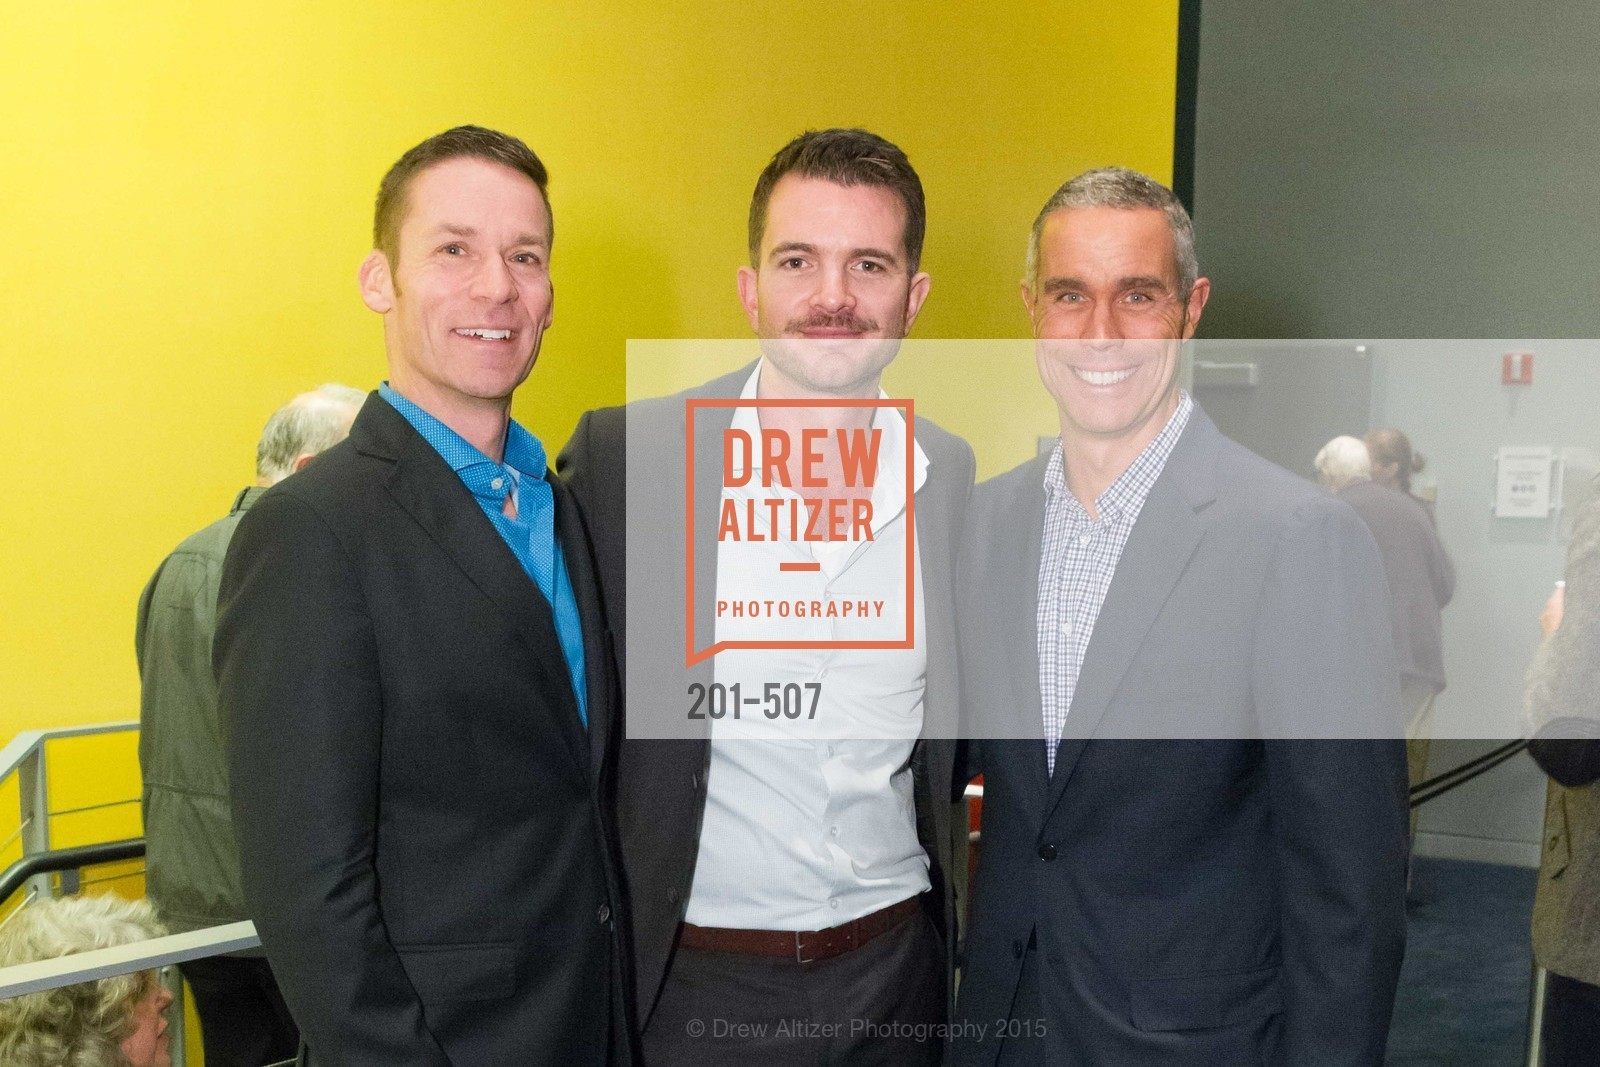 Andres Weidler, Brad Hock, Daniel Veetch, Cancer Prevention Institute of California Presents DanceFAR, YBCA Theatre and Forum. 701 Mission Street, November 10th, 2015,Drew Altizer, Drew Altizer Photography, full-service agency, private events, San Francisco photographer, photographer california